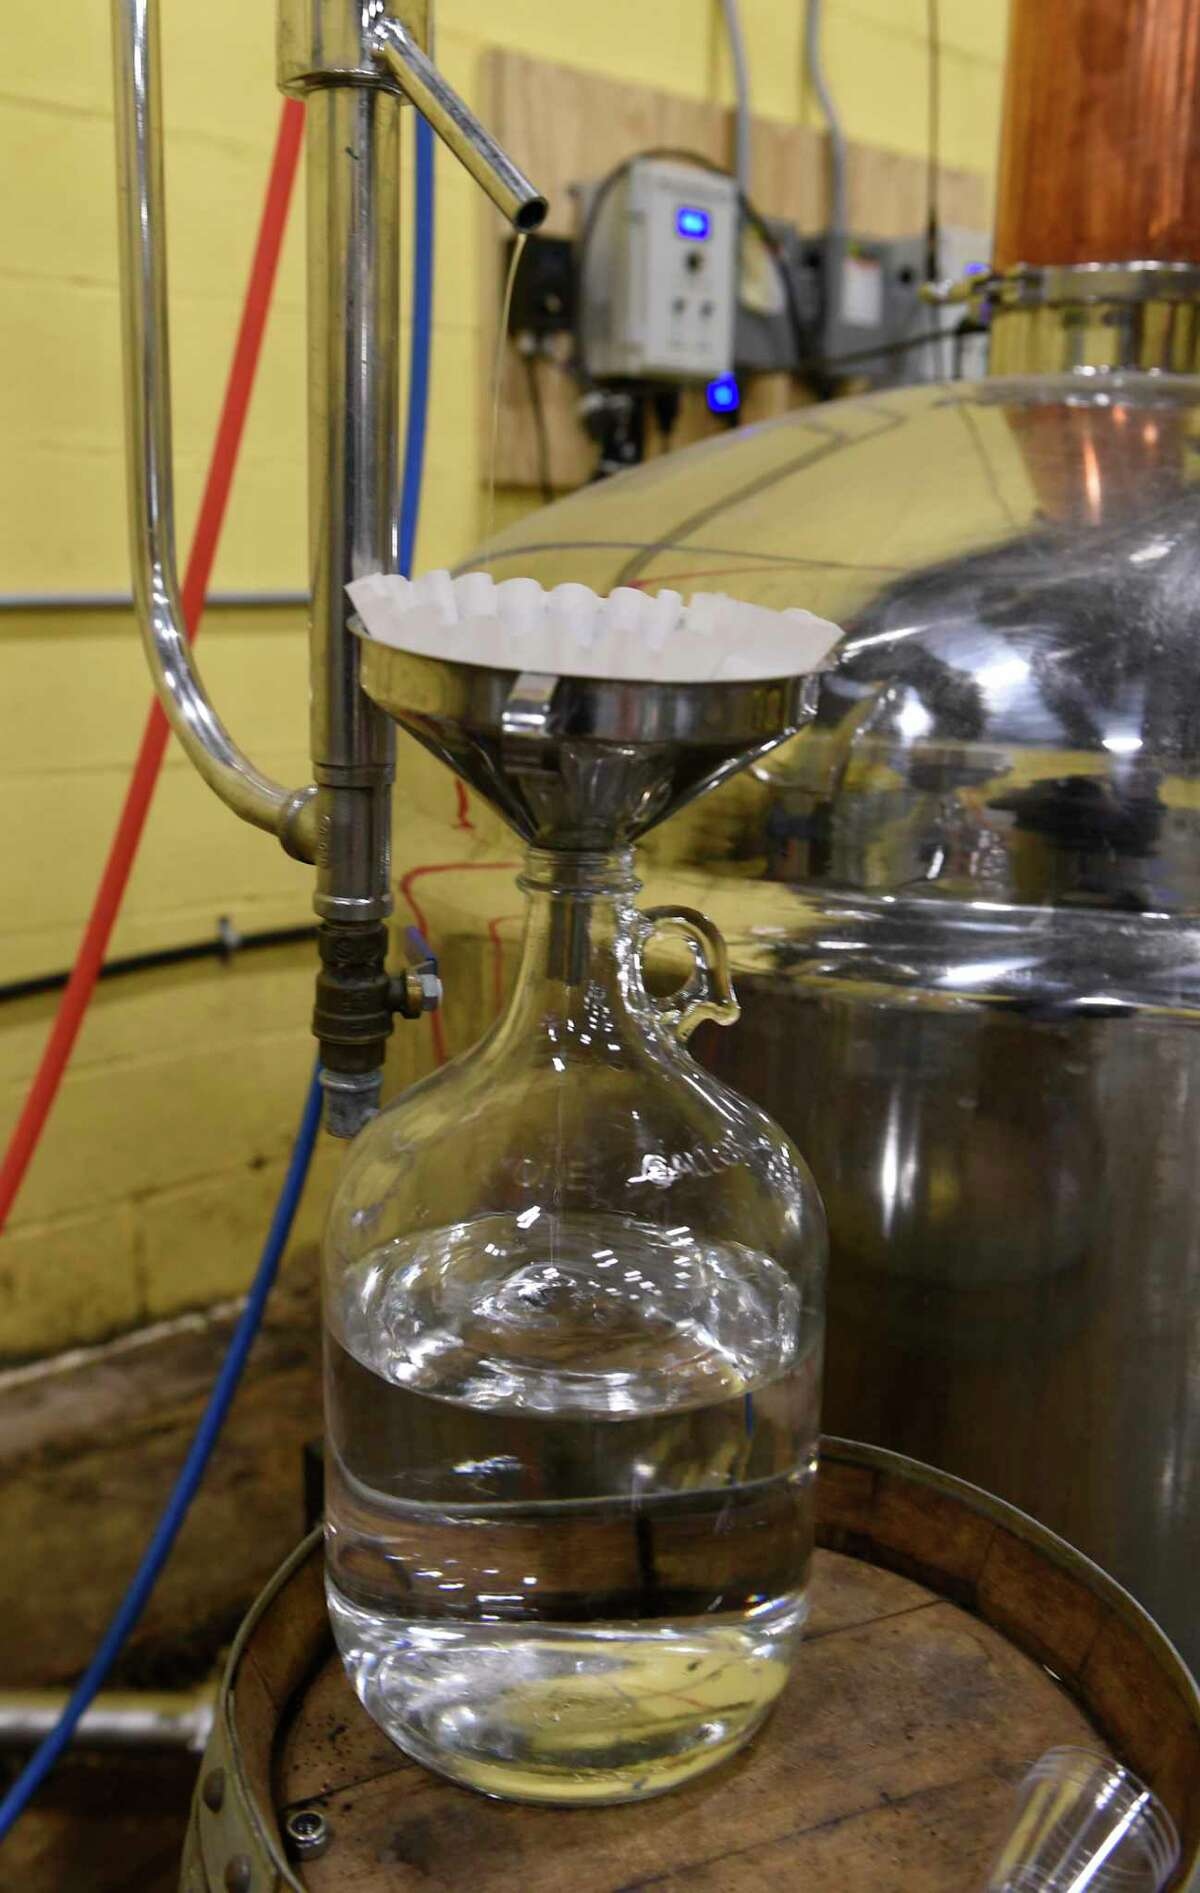 Vodka is produced in a still at Capital Distillery on Wednesday March 25, 2020 in Albany, N.Y. The distillery's owner Douglas Estadt has been making hand sanitizer with the